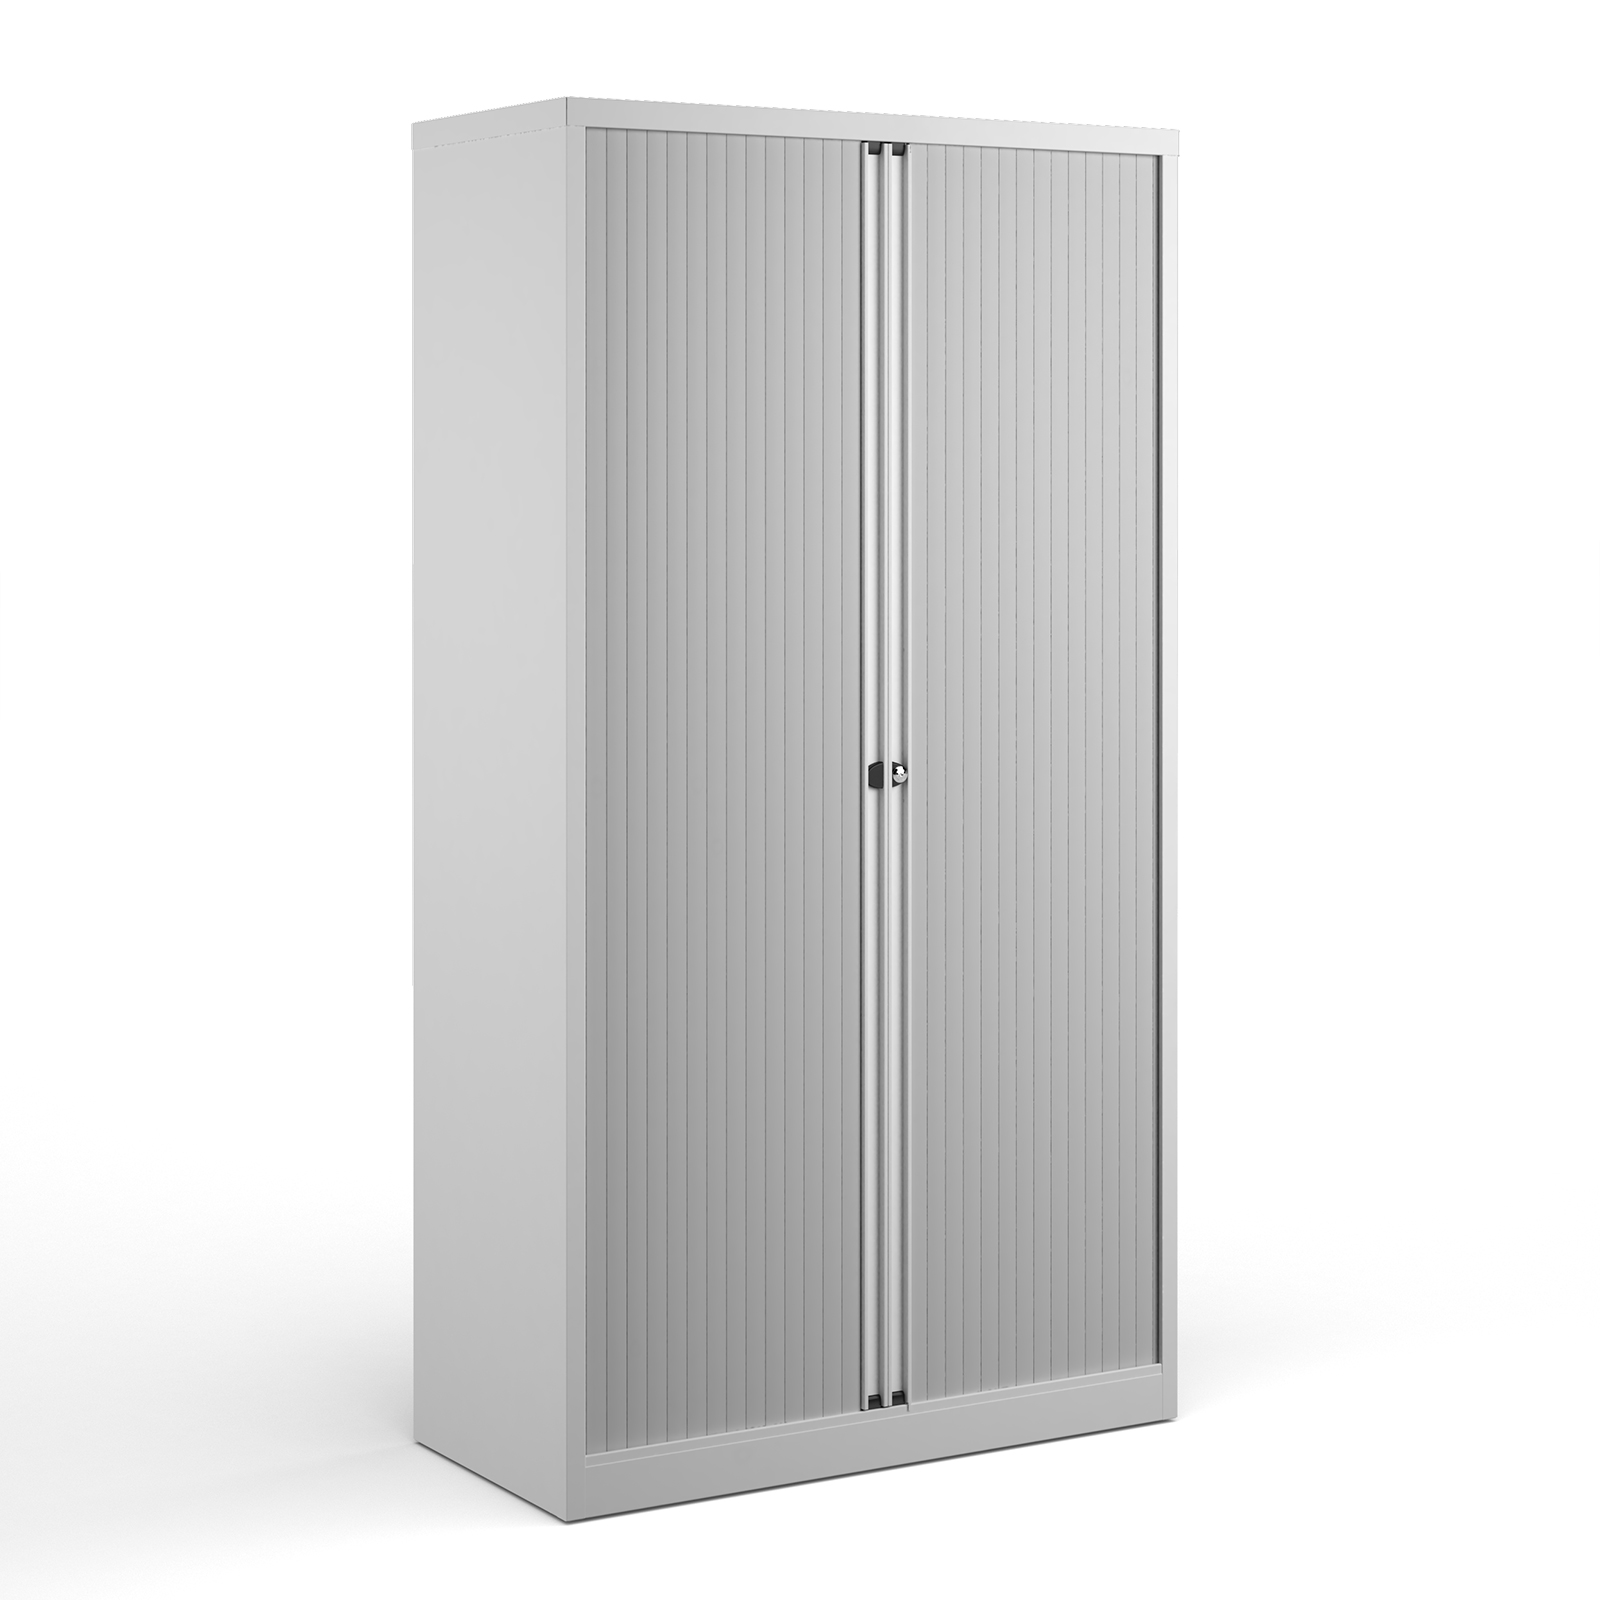 Over 1200mm High Bisley systems storage high tambour cupboard 1970mm high - white